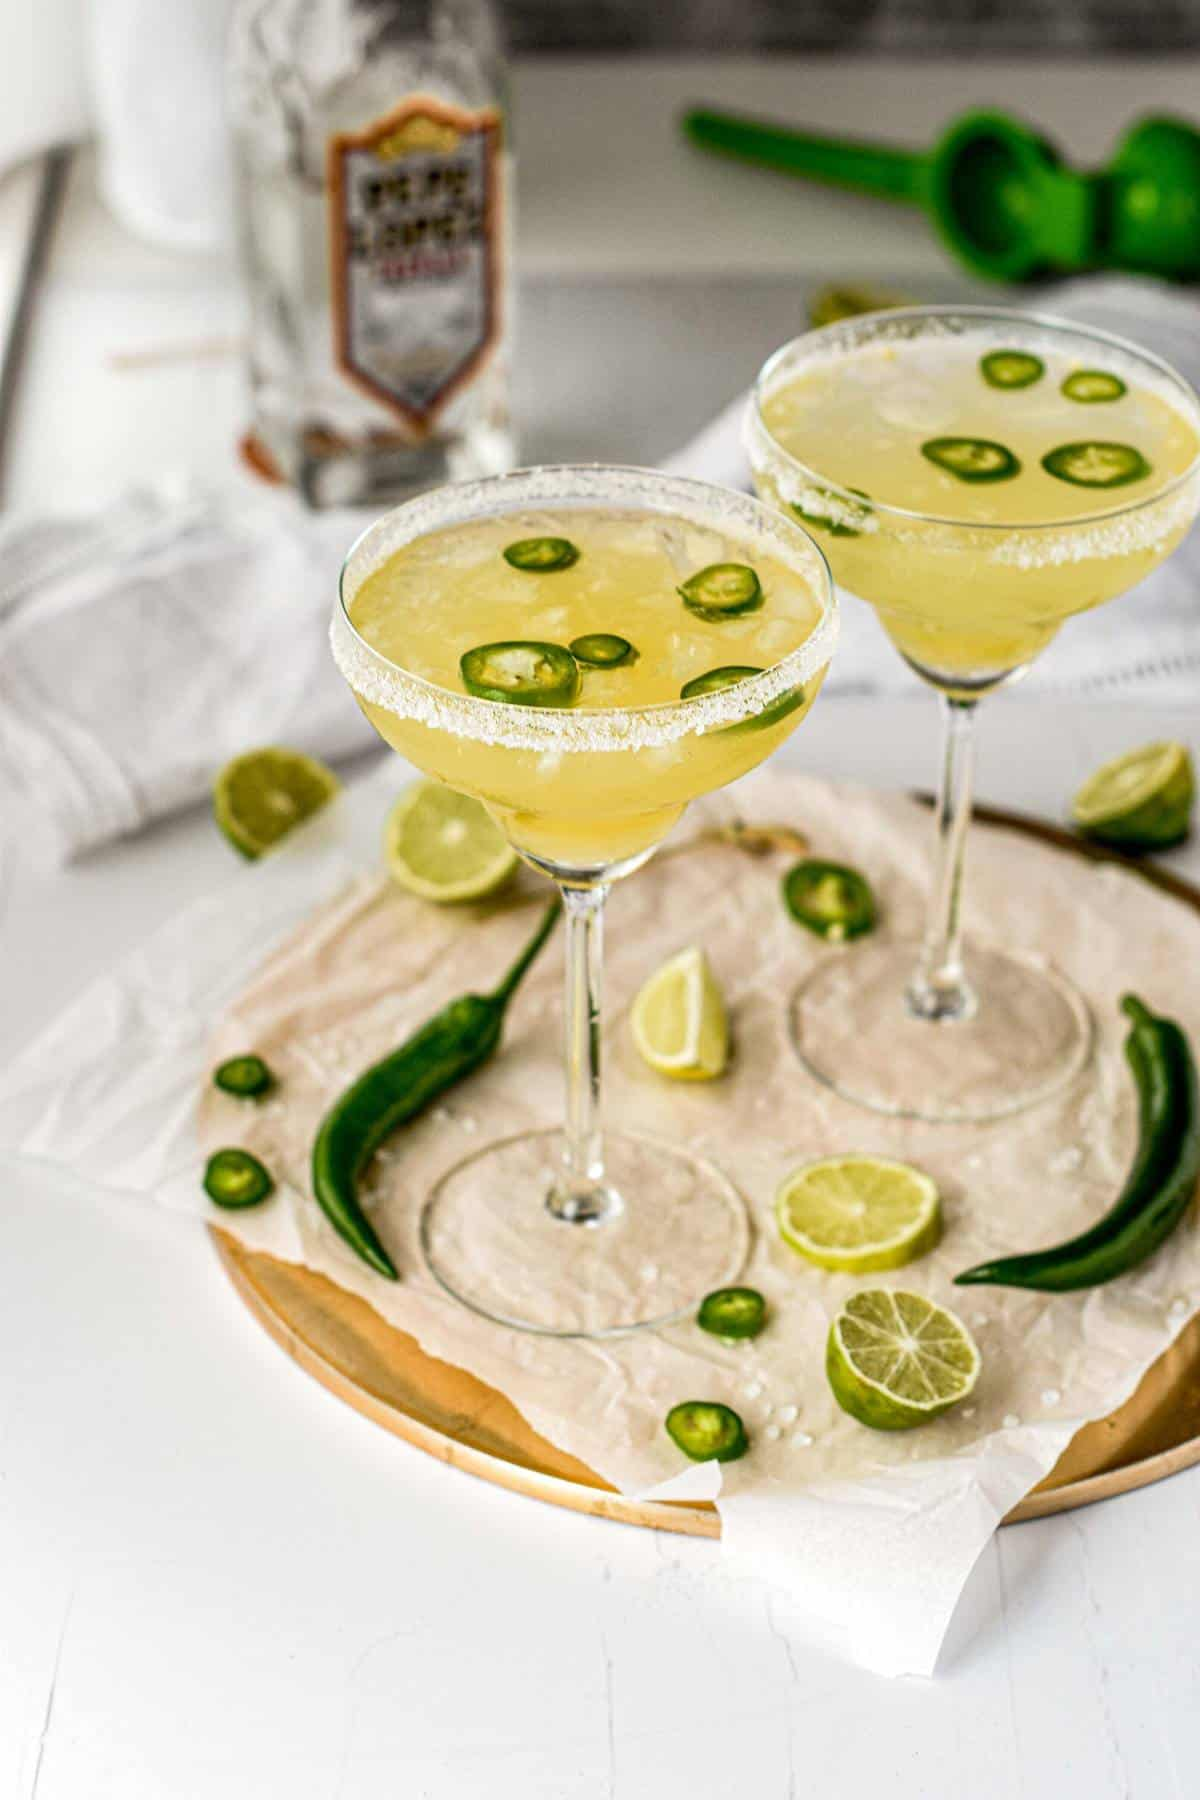 Spicy Skinny Margarita Ready to Drink